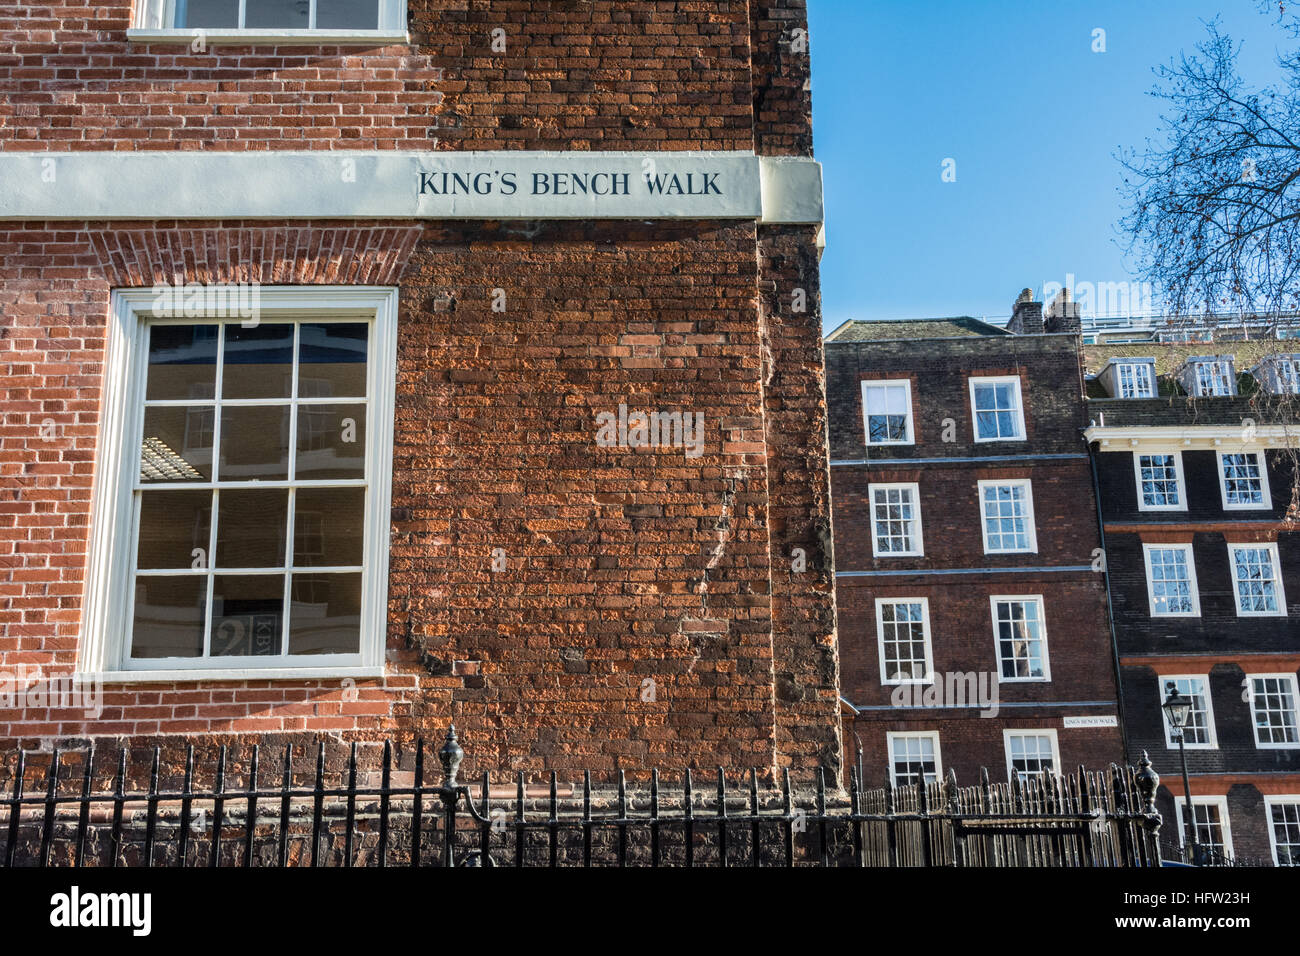 Kings Bench Walk, Inner Temple. Inns of Court., London, UK, - Stock Image